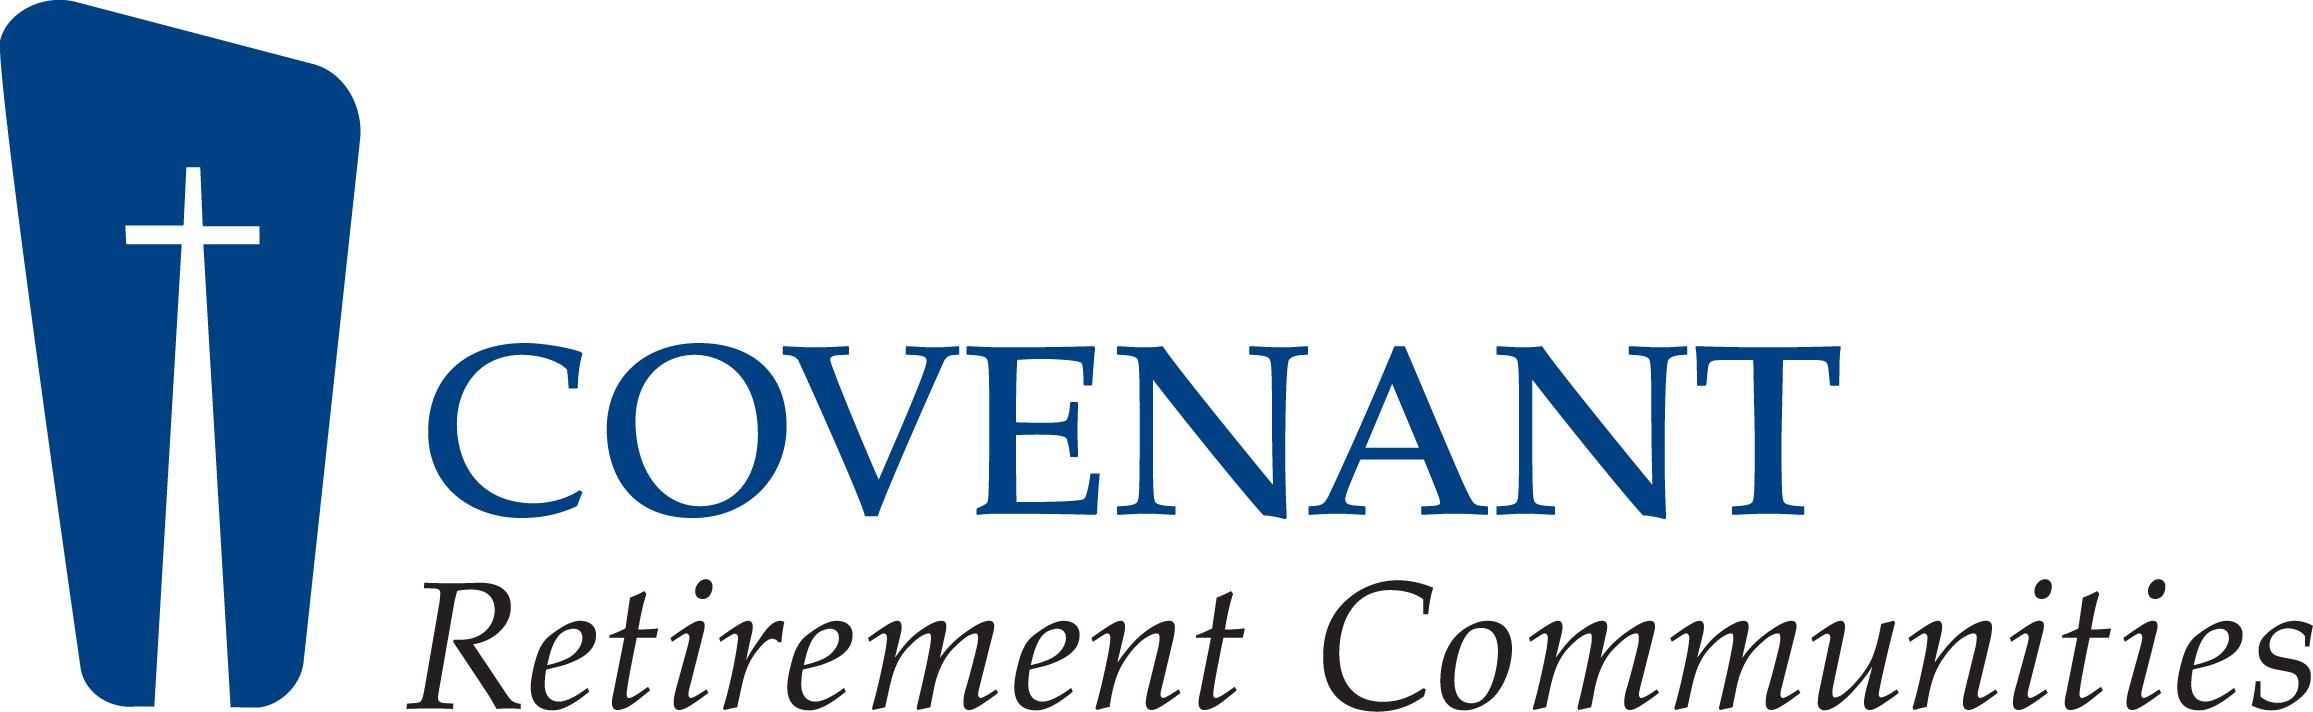 Covenant Retirement Communities - Ultimate Software